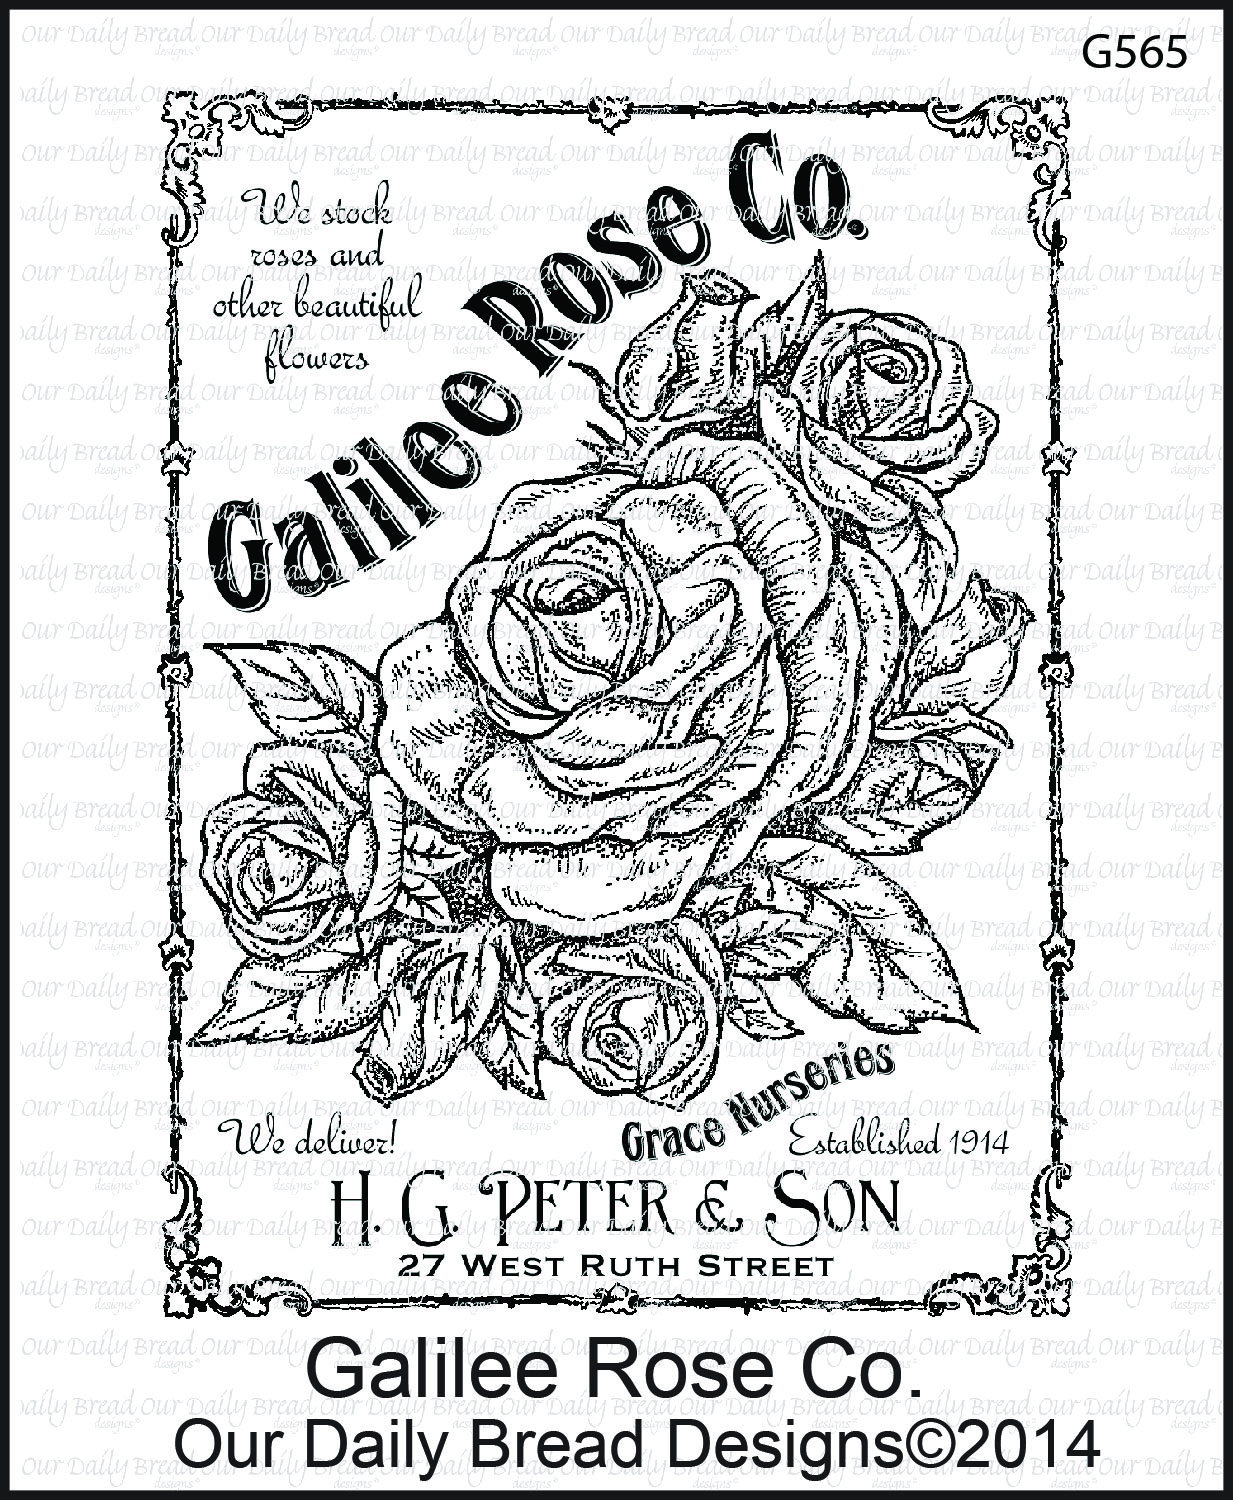 Stamps - Our Daily Bread Designs Galilee Rose Co.